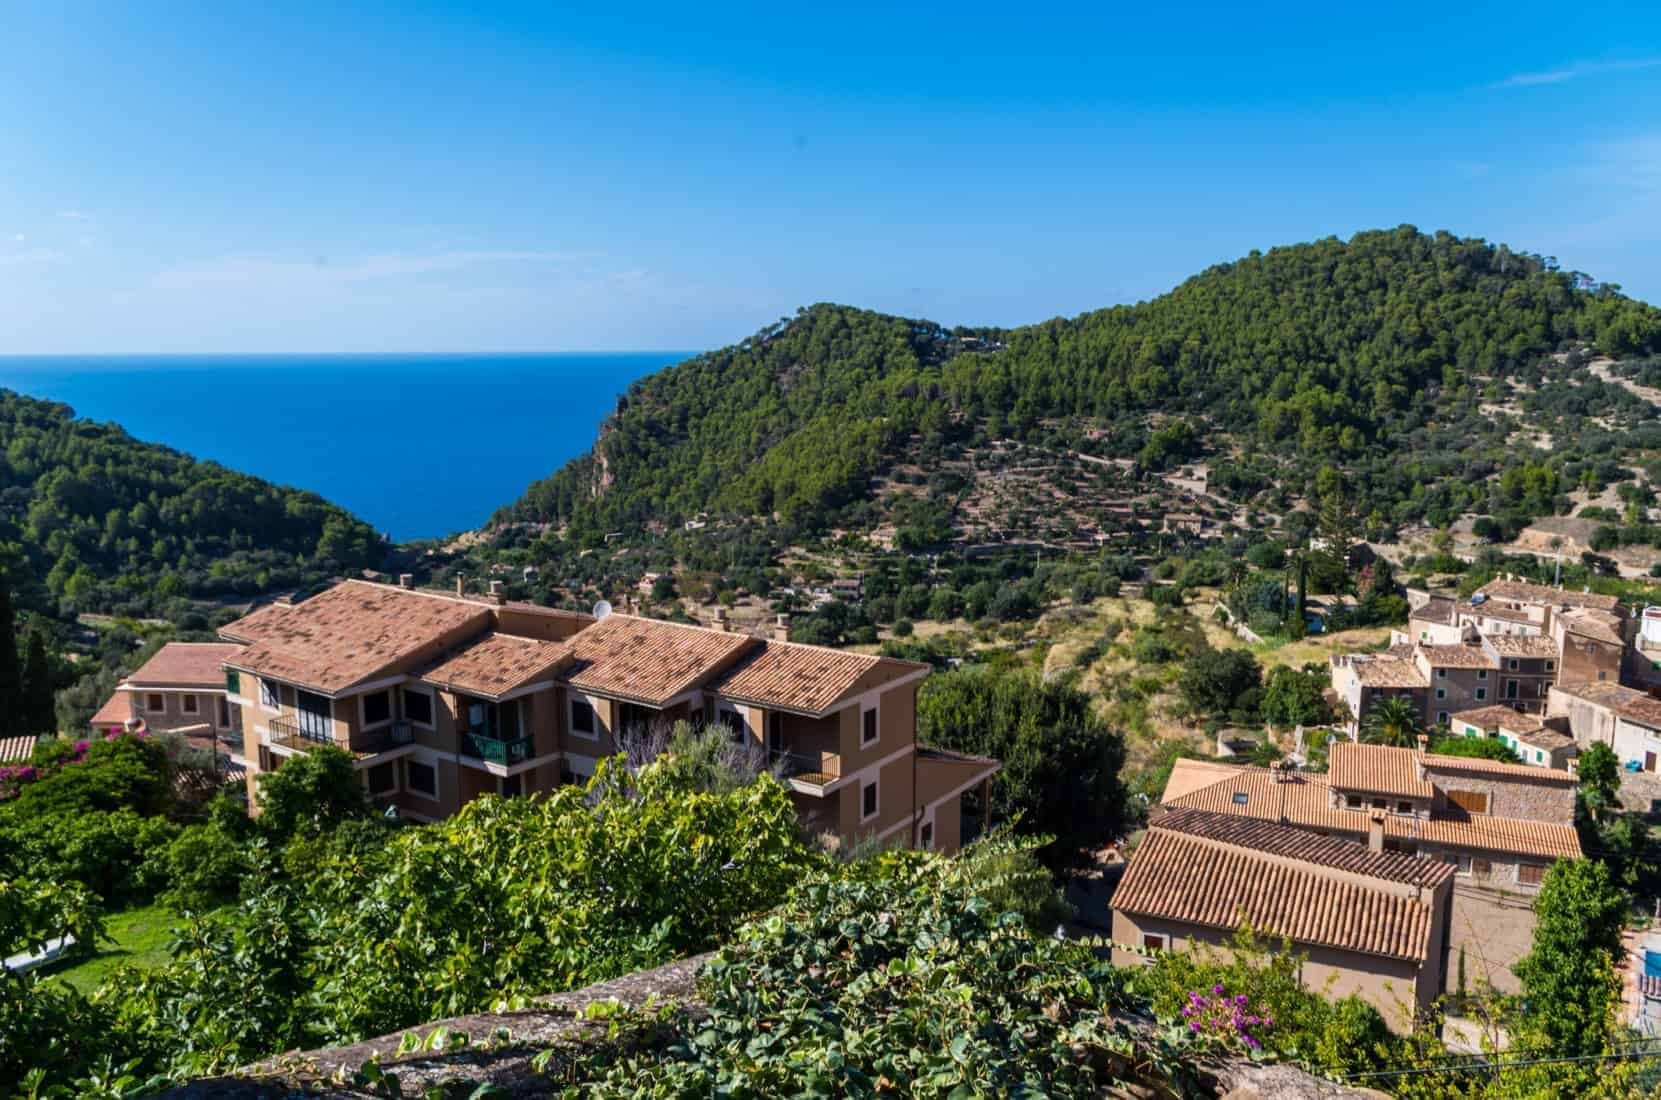 Beautiful panorama of the town Estellencs in the mountains of Tramuntana on Mallorca, Spain